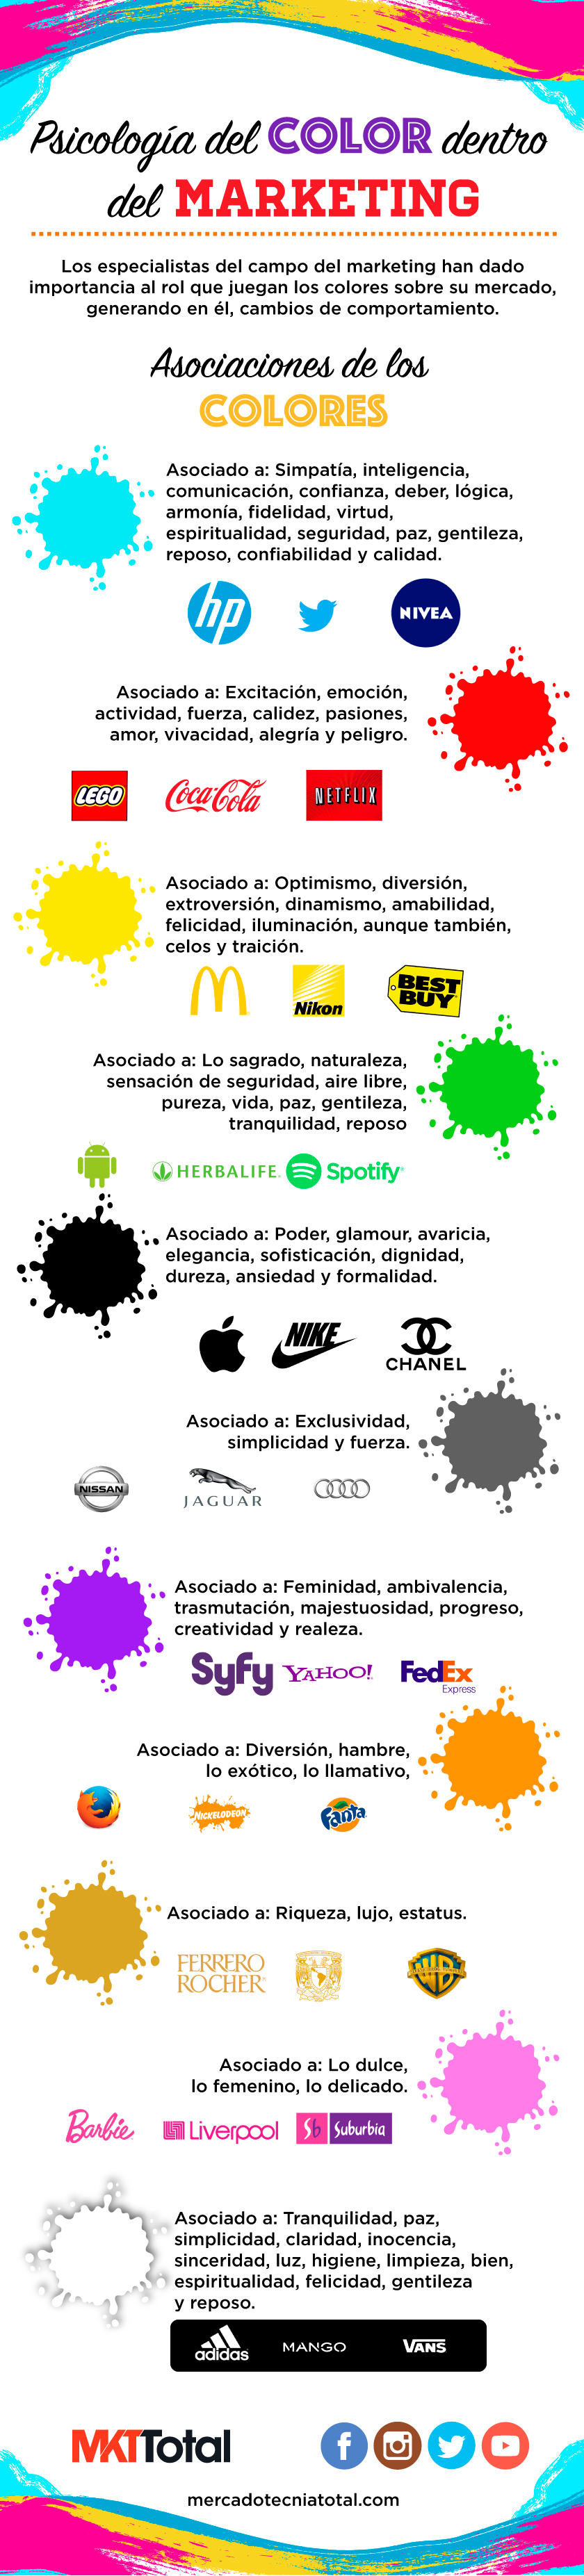 Psicología del color dentro del marketing